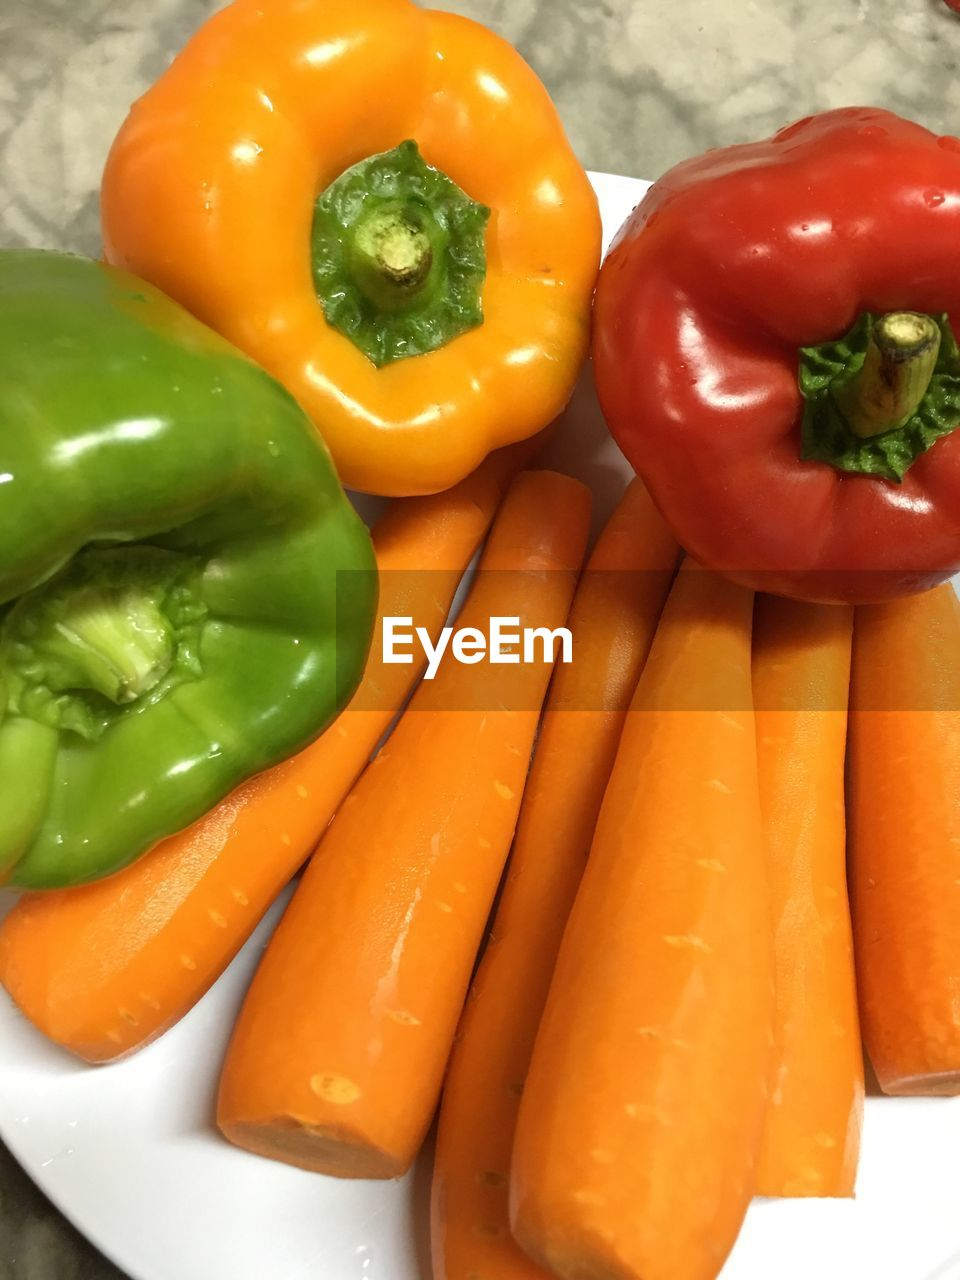 yellow bell pepper, bell pepper, vegetable, red bell pepper, food and drink, freshness, still life, green bell pepper, healthy eating, food, pepper - vegetable, raw food, no people, high angle view, variation, close-up, red, green color, indoors, day